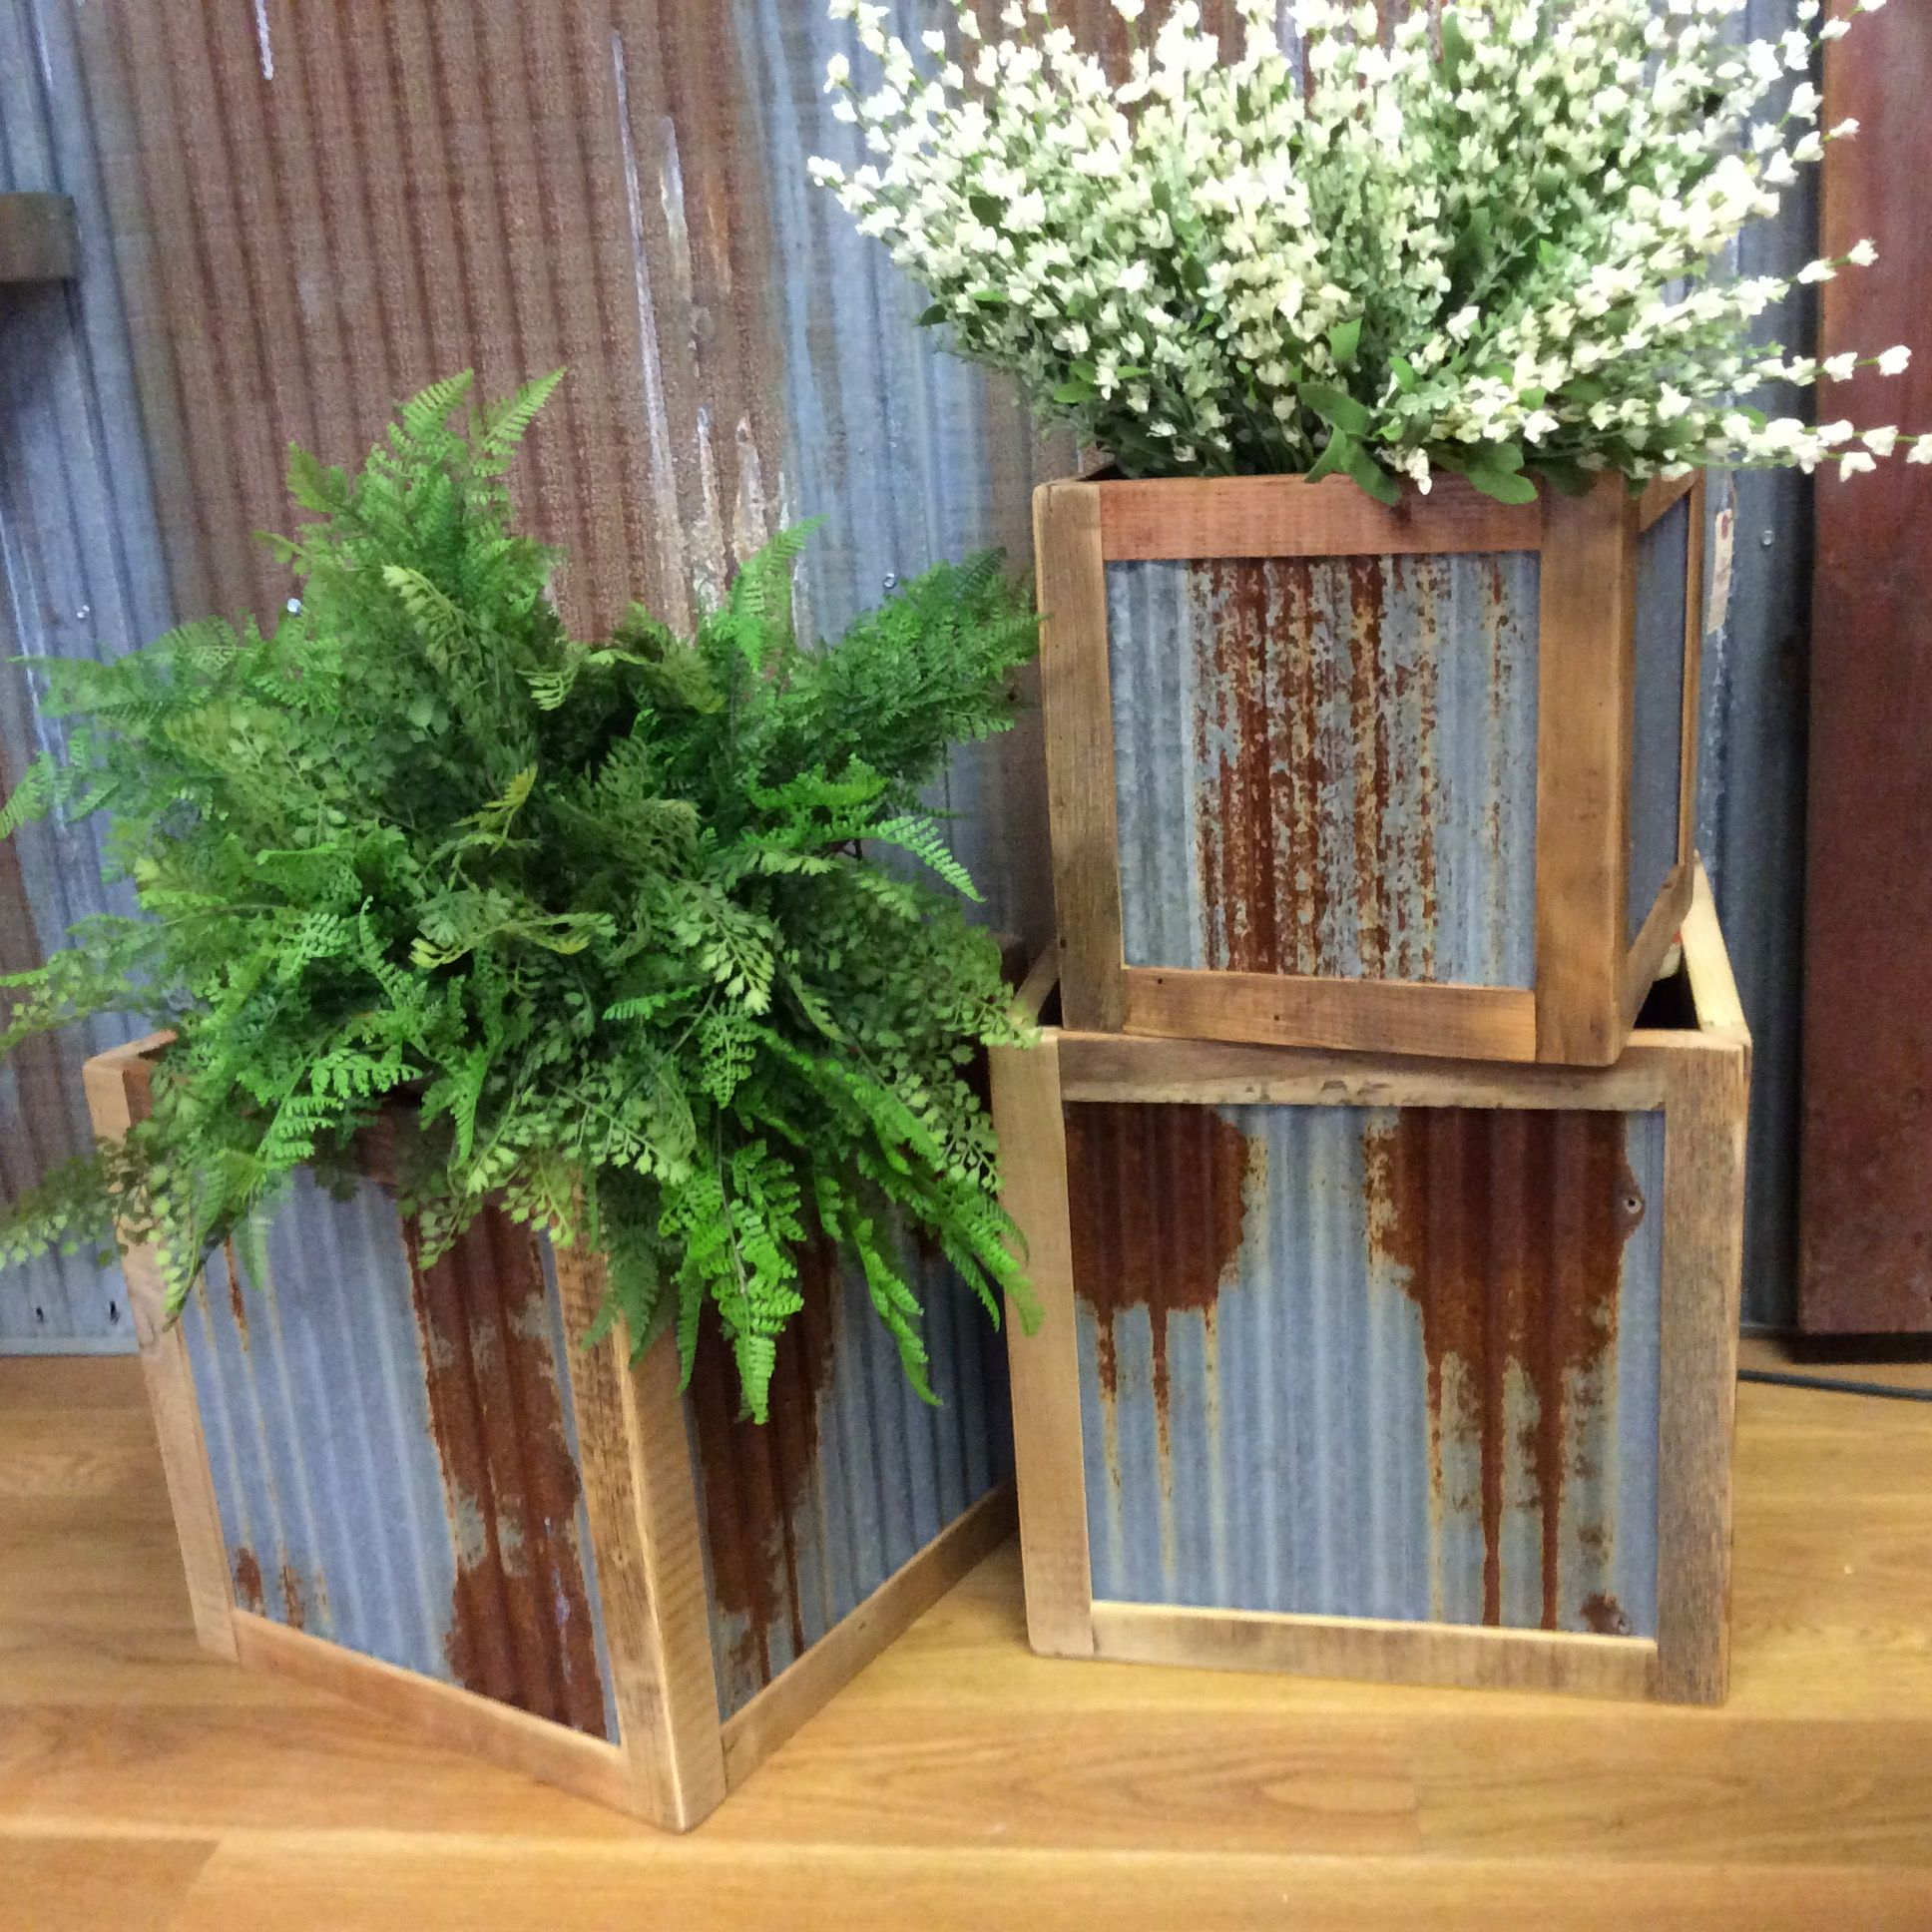 Diy Planter Box Is A Simple But Effective Medium To Display Your Favorite Plants Metal Window Boxes Front Porch Decorating Diy Planter Box